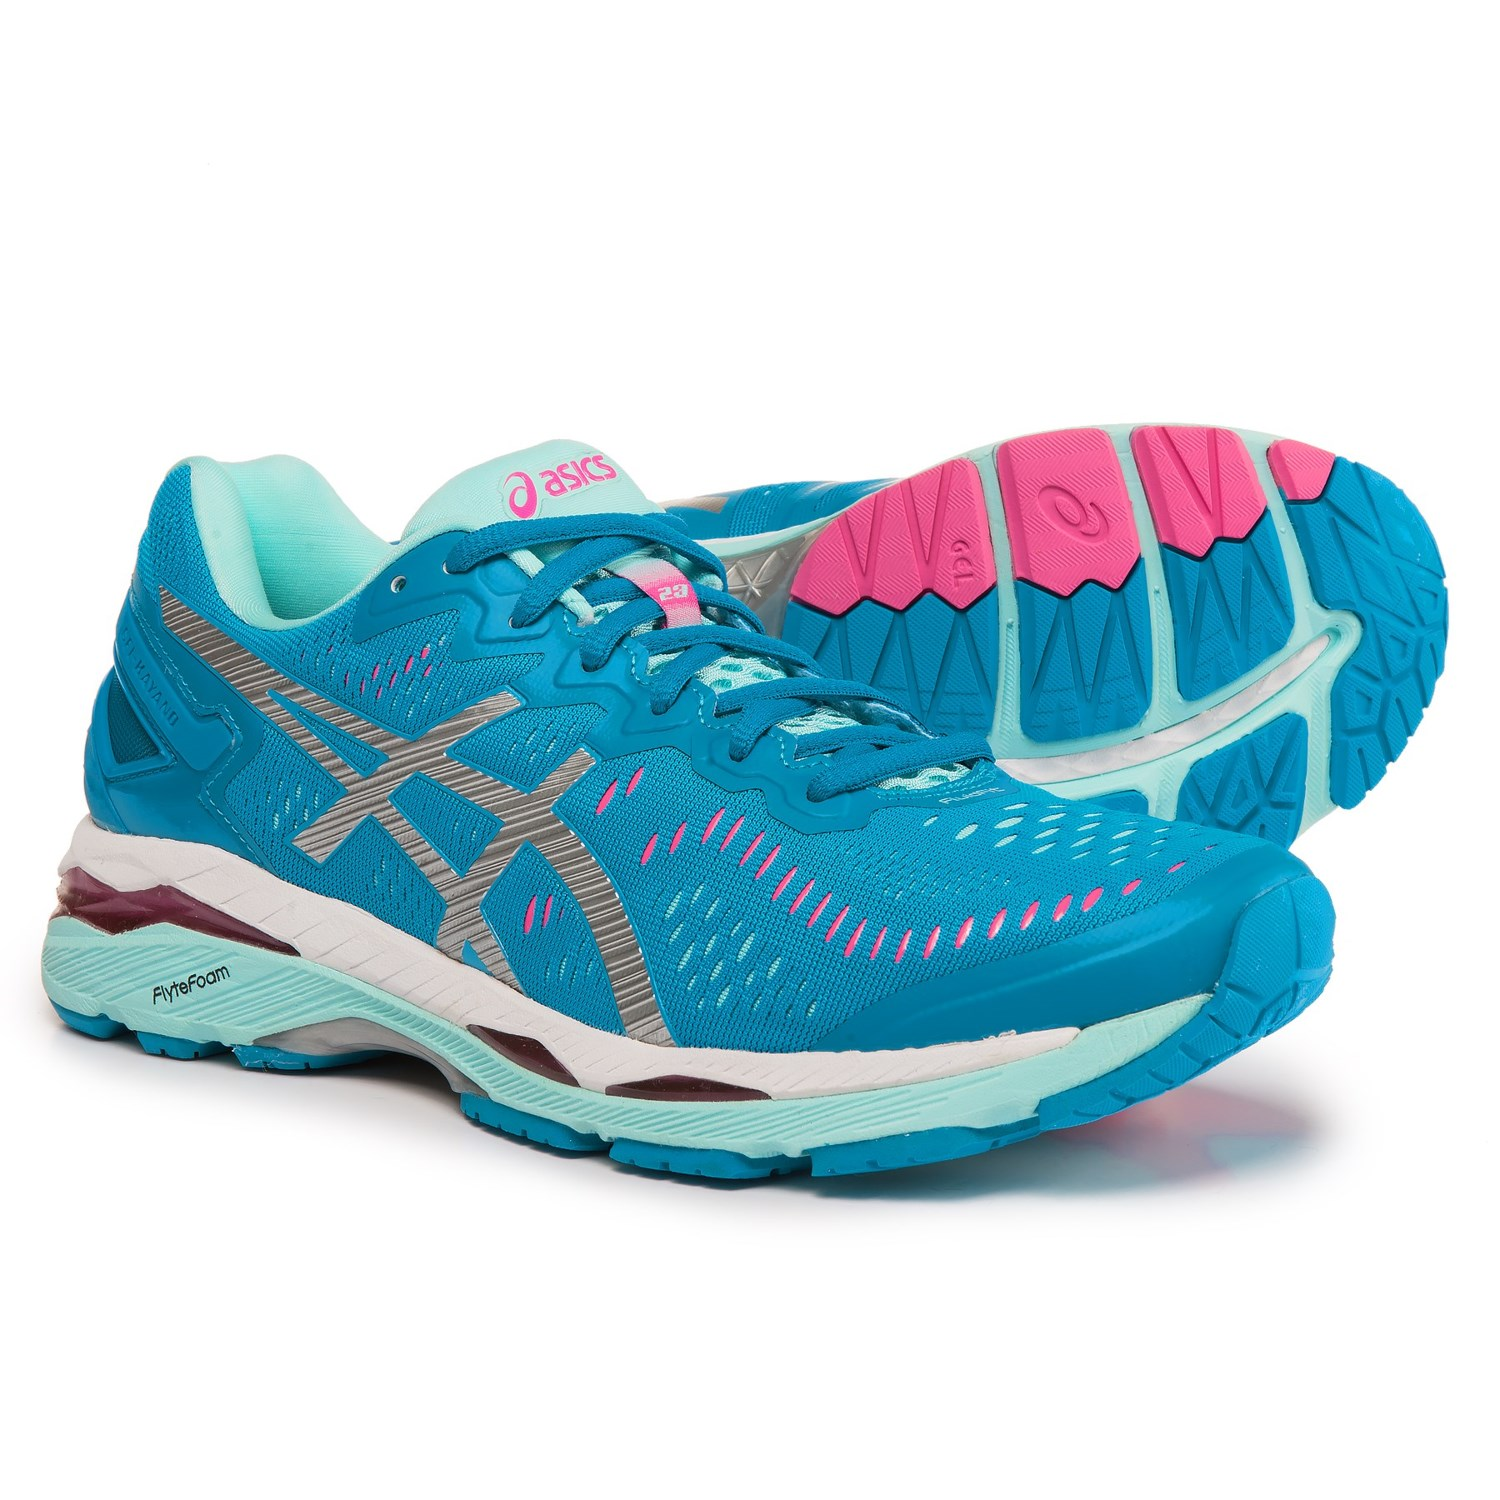 ASICS GEL-Kayano 23 Running Shoes (For Women) in Diva Blue/Silver